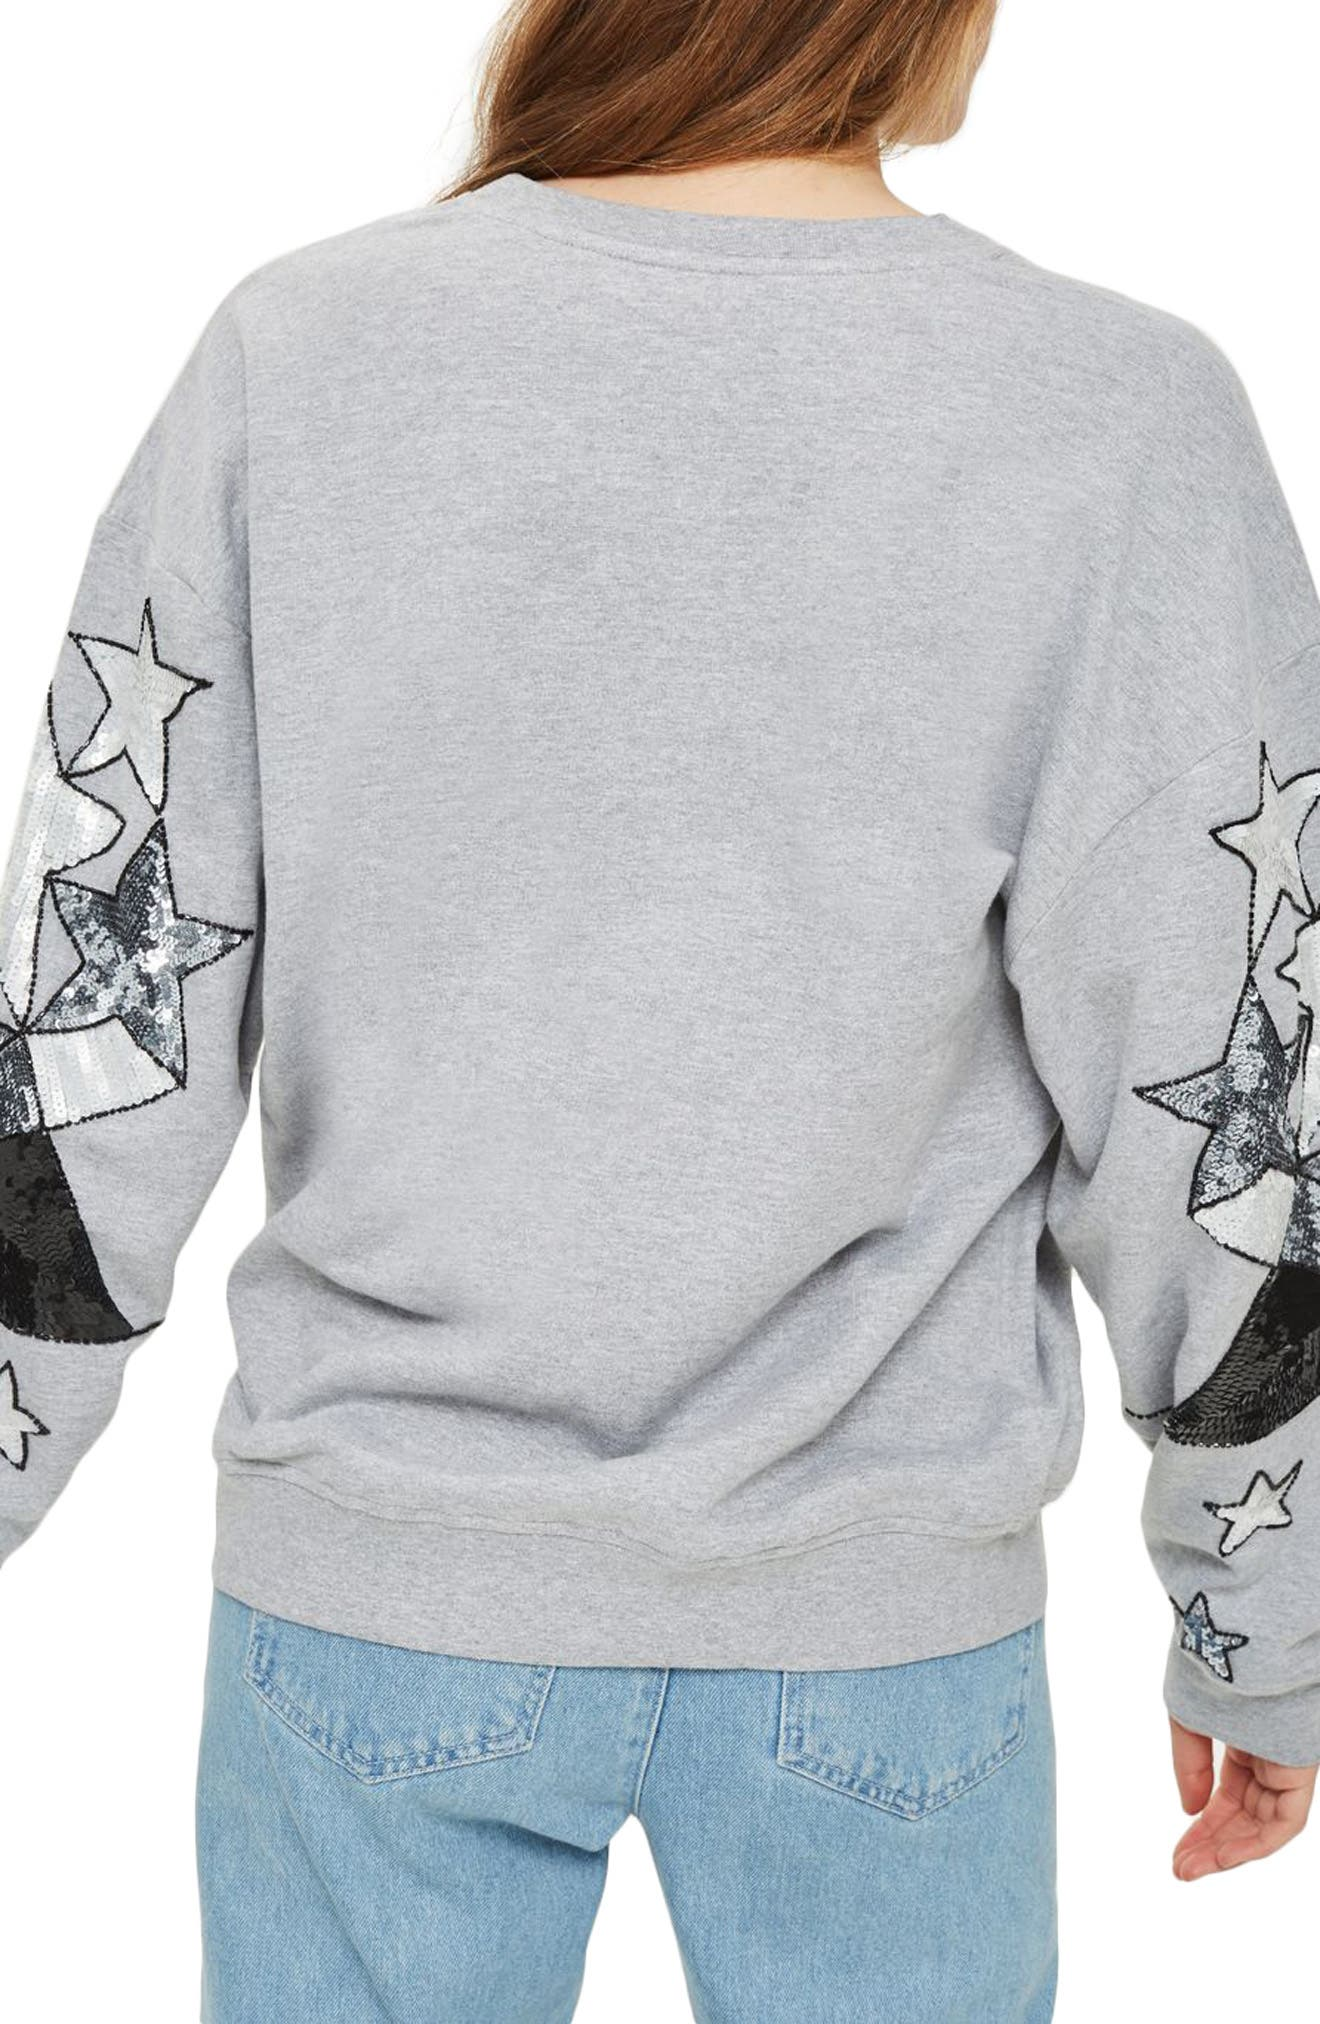 Sequin Star Sleeve Sweatshirt,                             Alternate thumbnail 2, color,                             Grey Marl